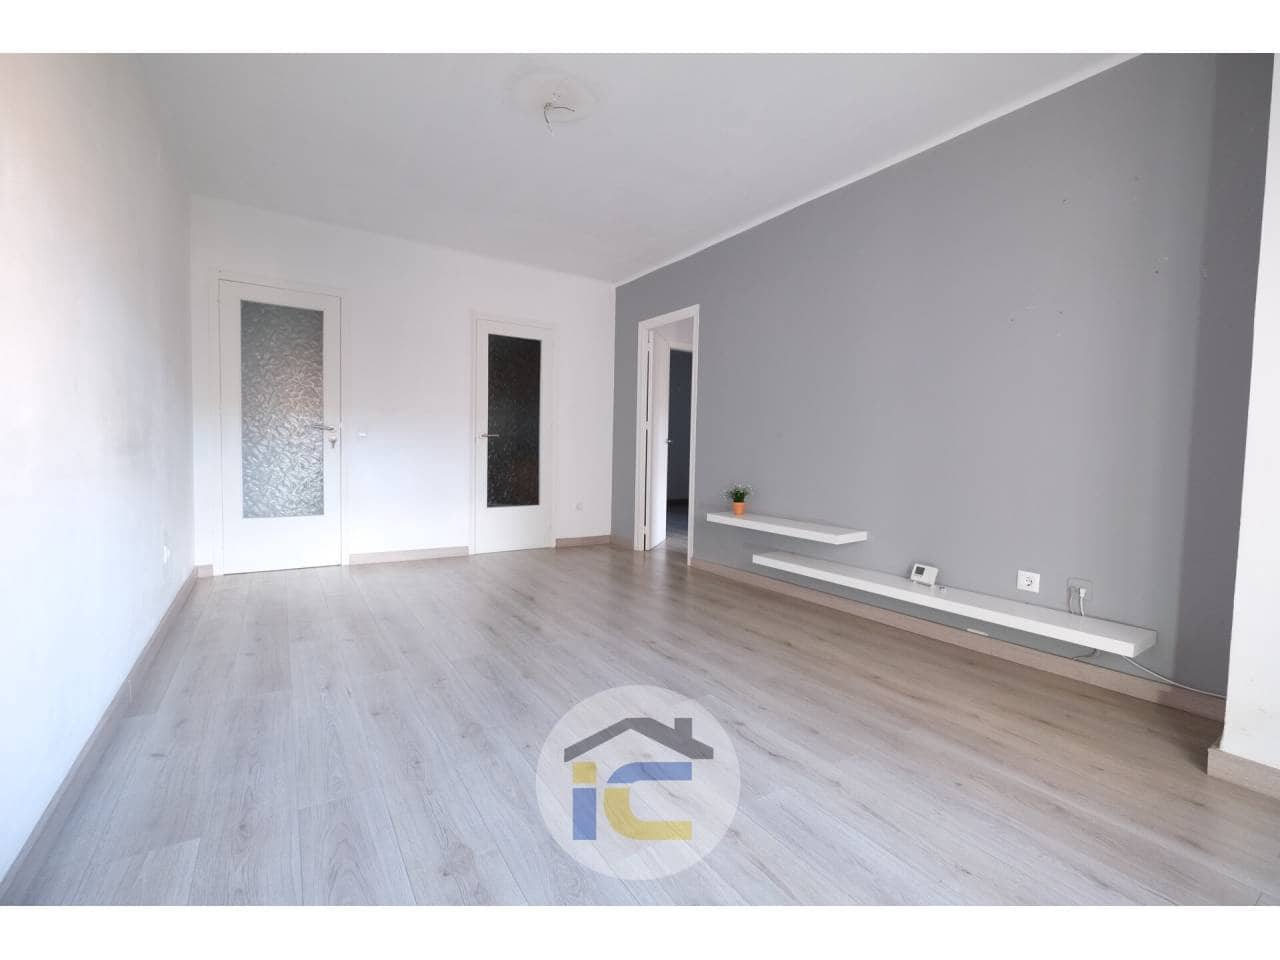 4 bedroom Flat for sale in Figueres with garage - € 105,000 (Ref: 6066055)